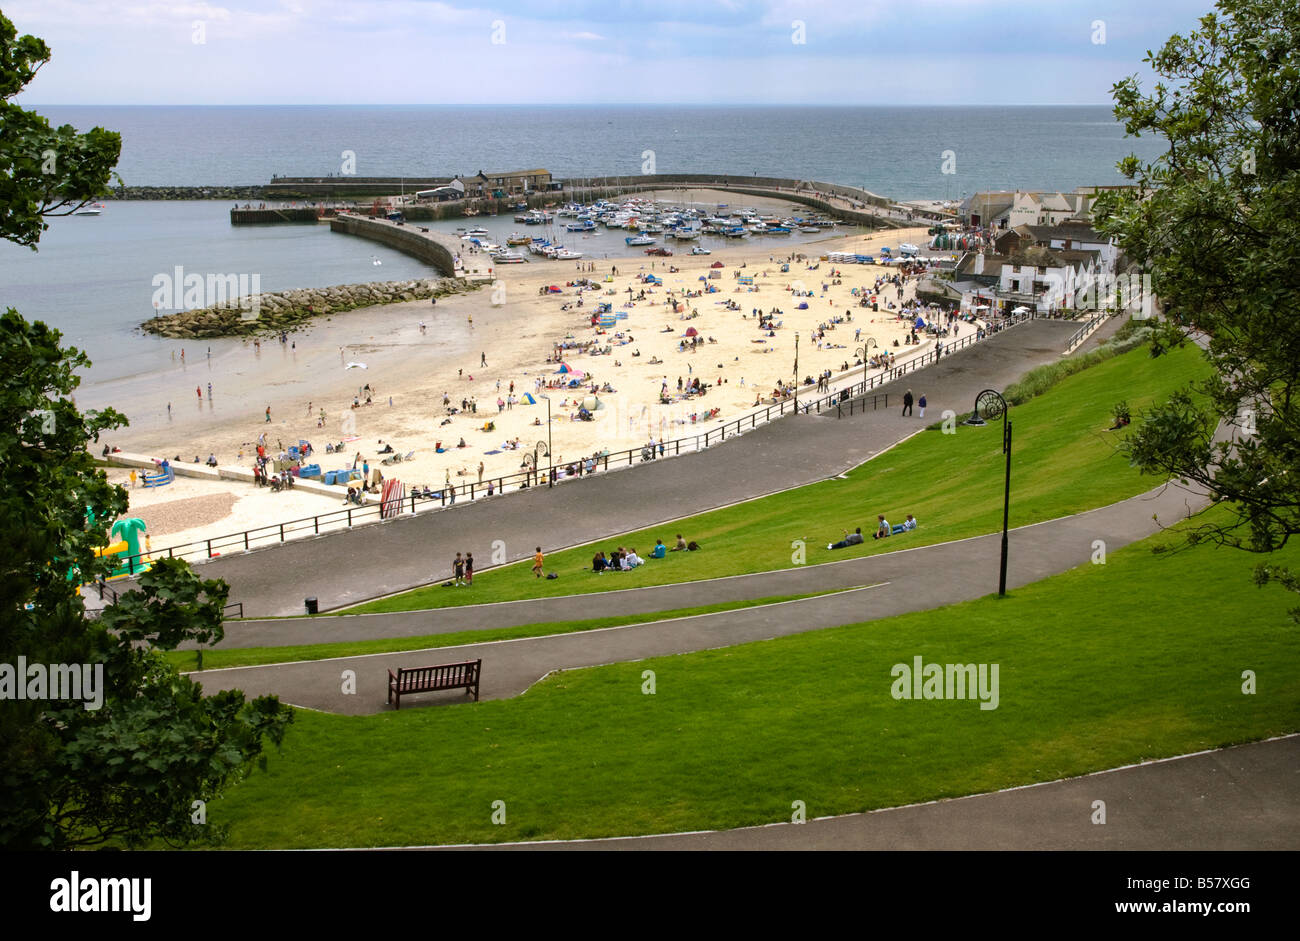 Lyme Regis Stock Photos & Lyme Regis Stock Images - Alamy